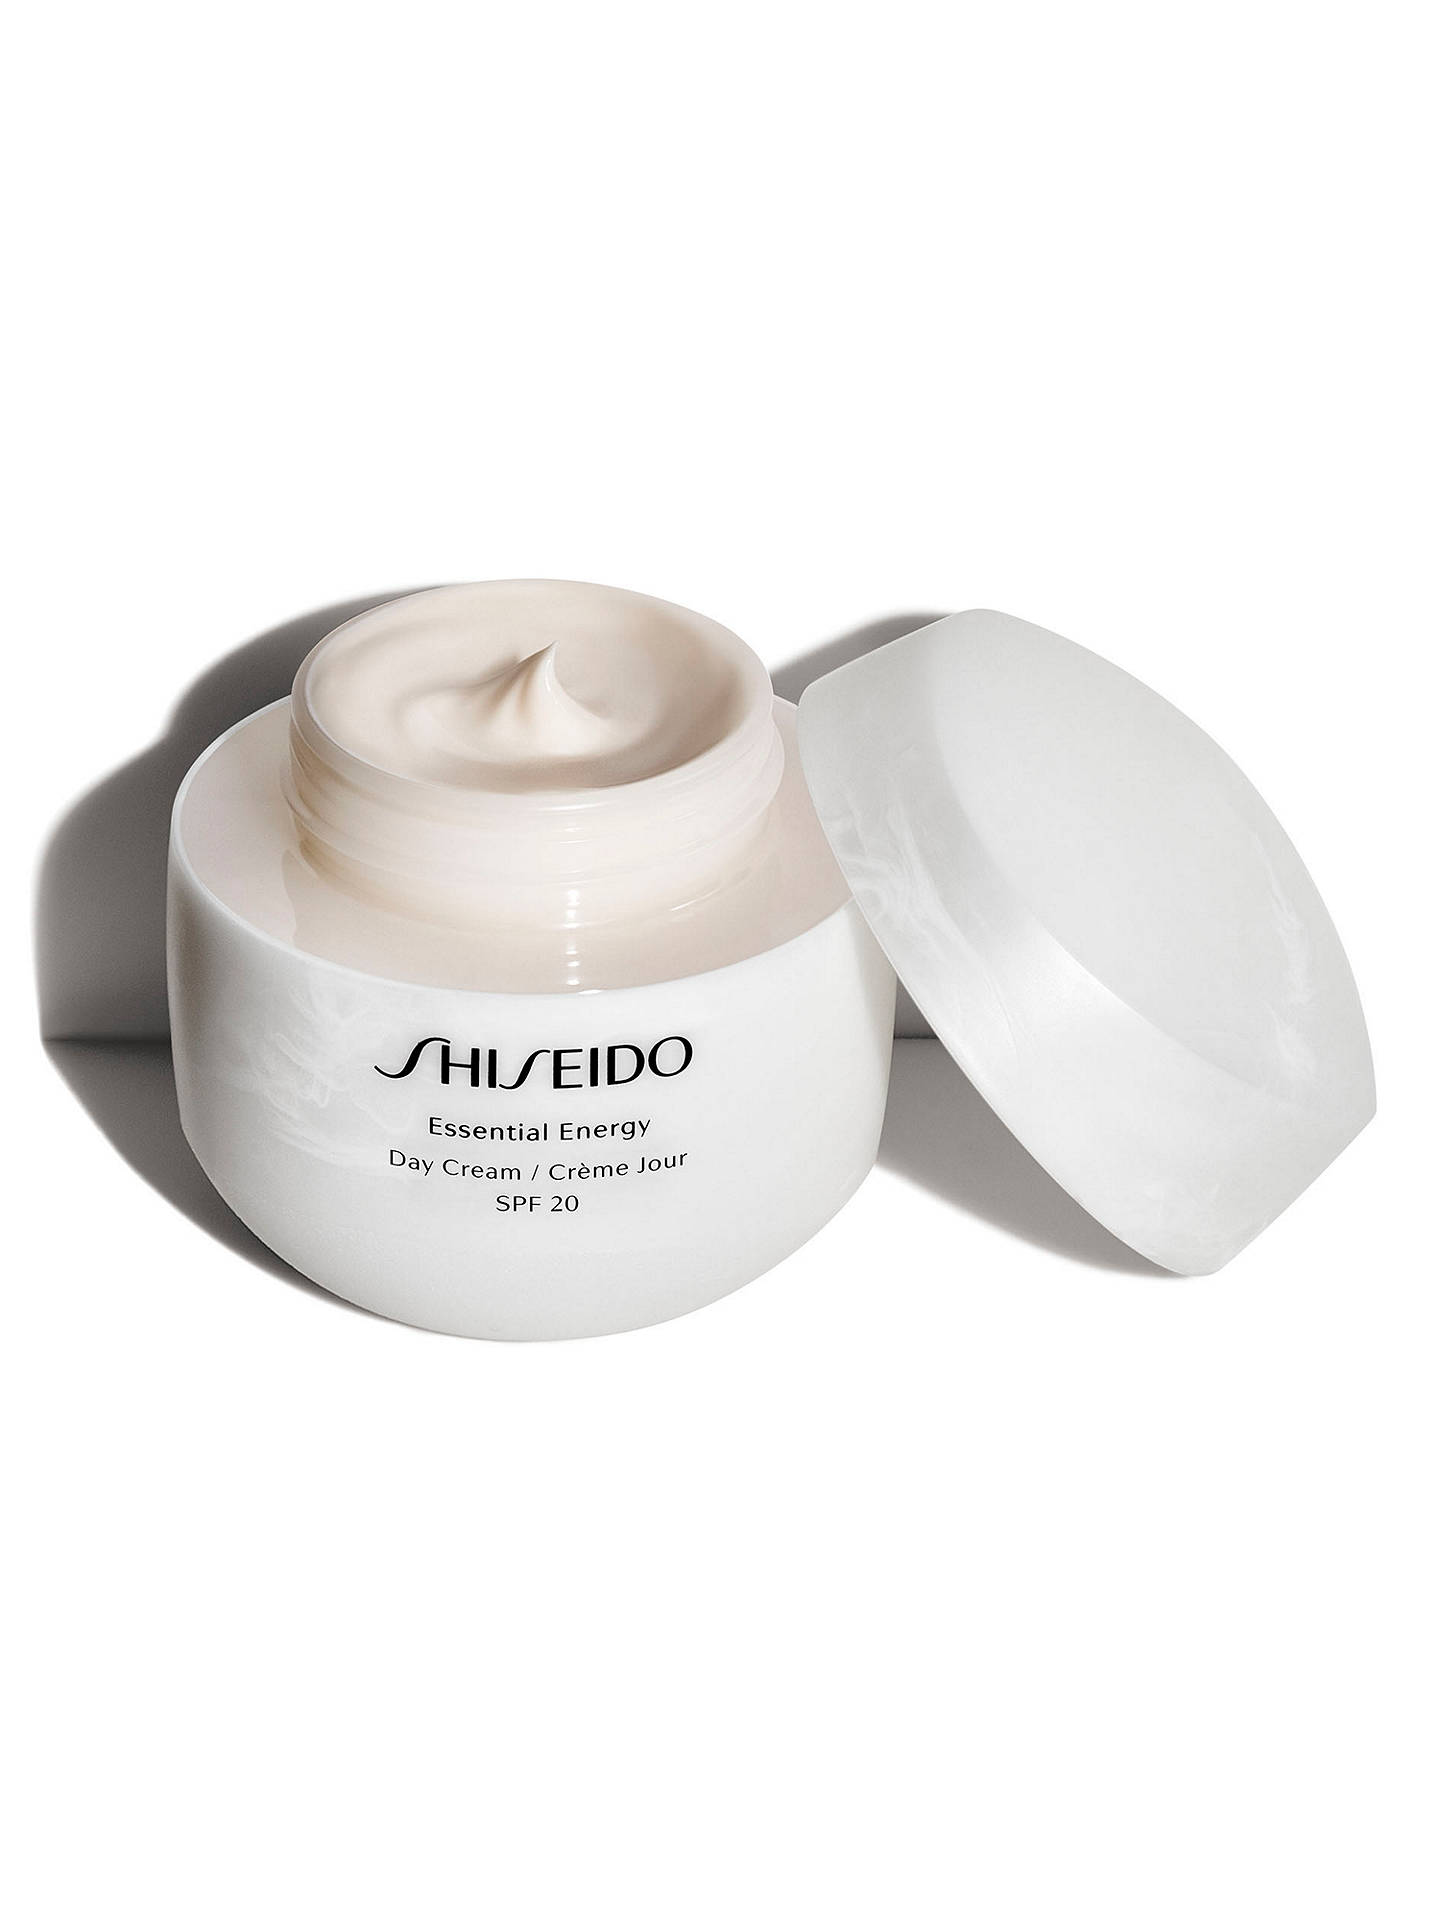 BuyShiseido Essential Energy Day Cream SPF 20, 50ml Online at johnlewis.com